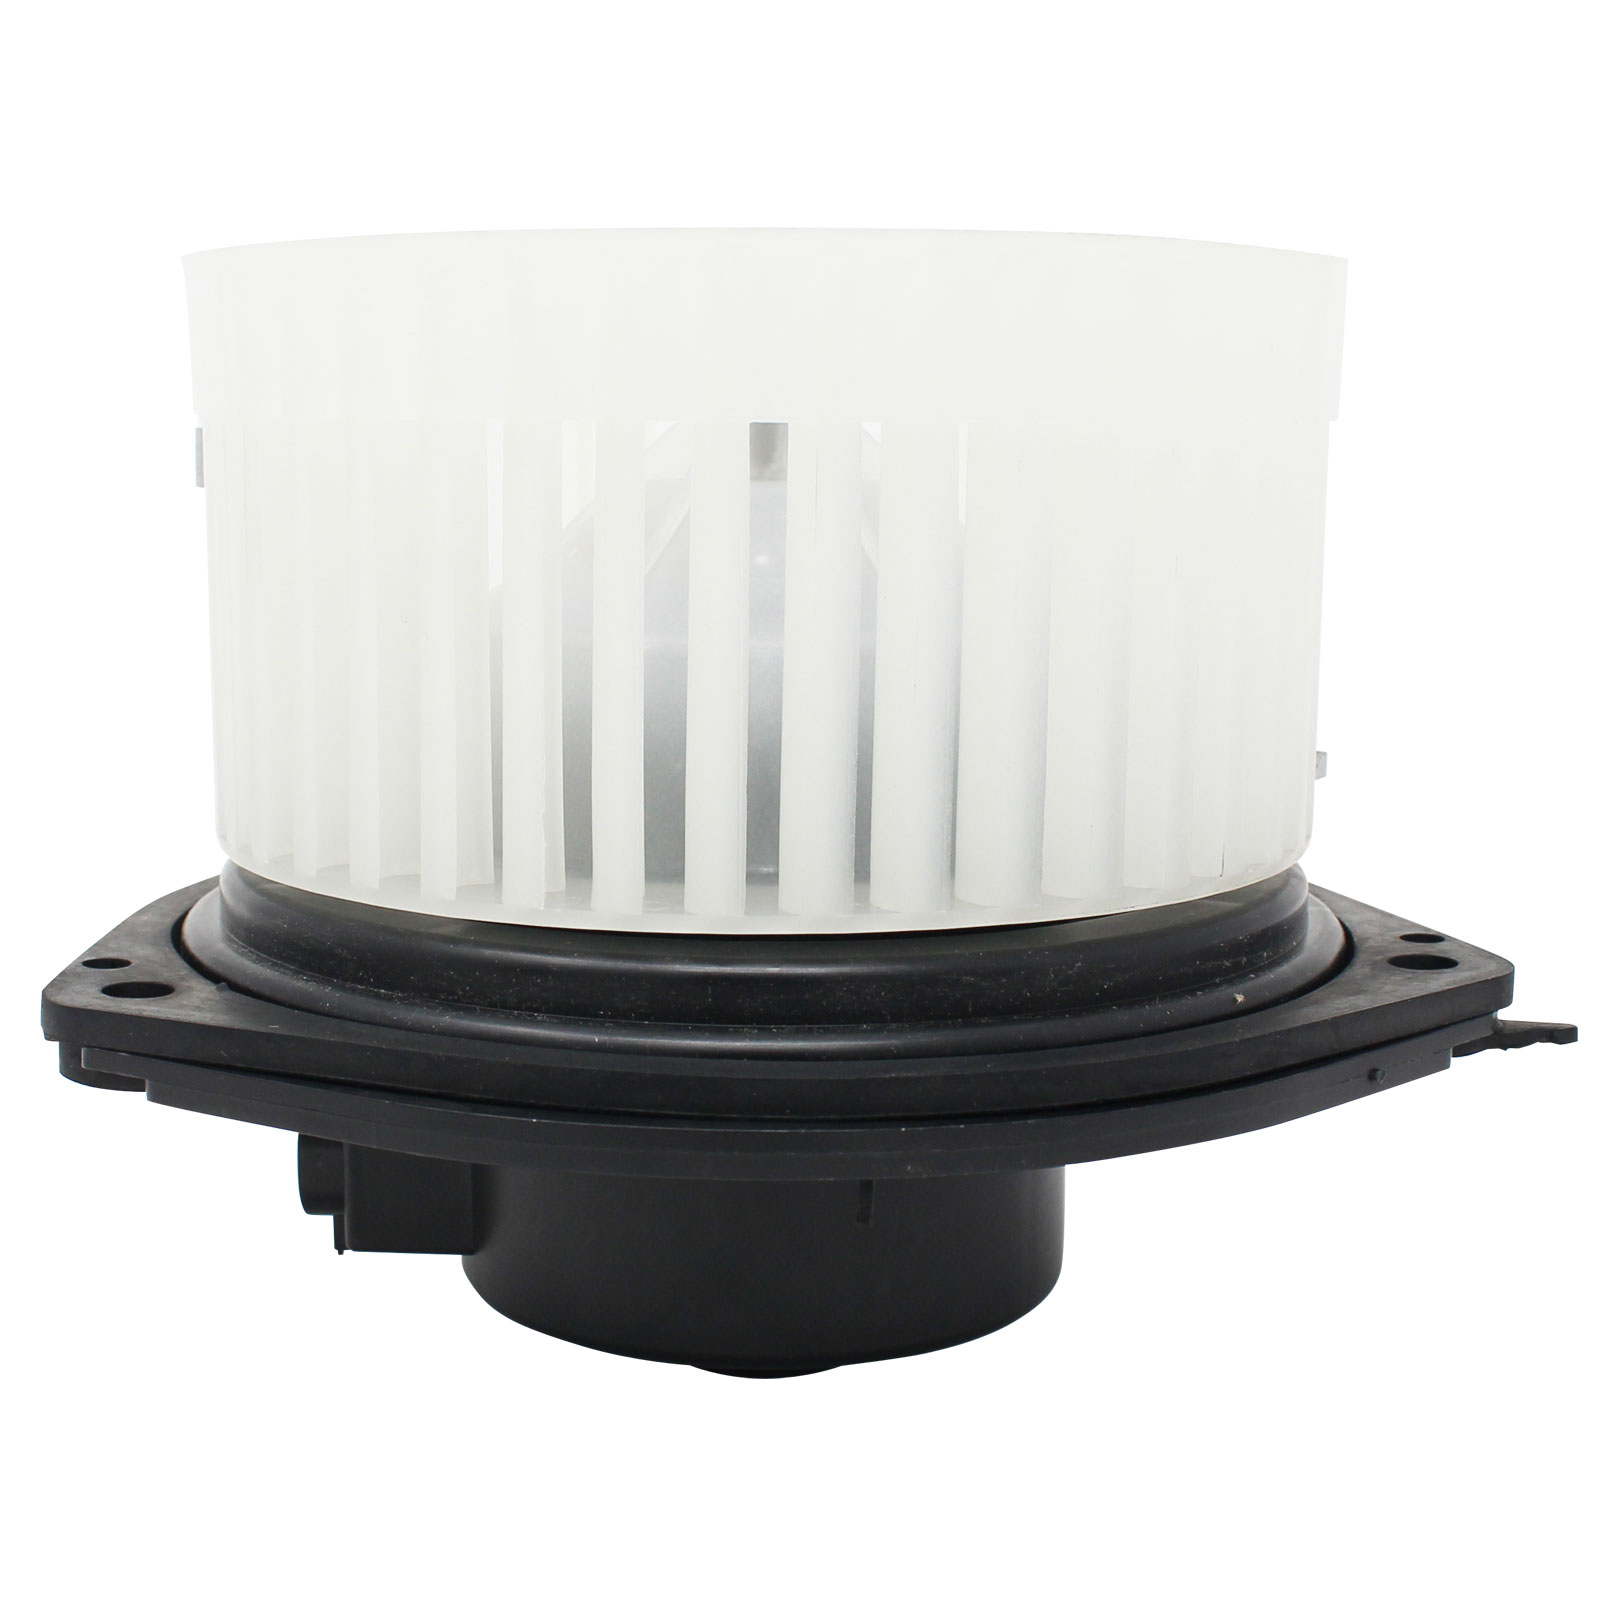 Replacement Blower Assembly for 2004 Cadillac DeVille Base Sedan 4-Door 4.6L - Compatible 89018521 Fan Motor Assembly